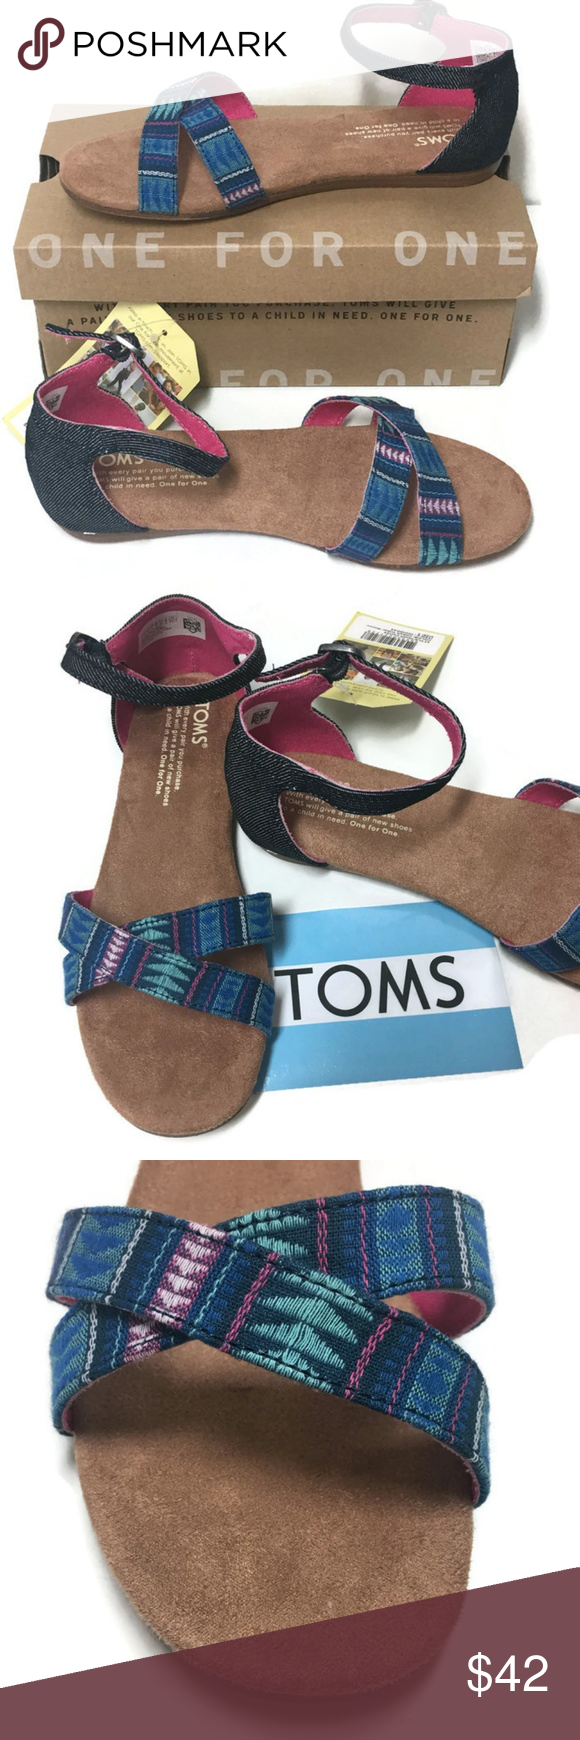 2918173ac06 TOMS Correa Sandals 3M Youth Girls Blue Tribal OMS Correa Sandals New in  Box Style